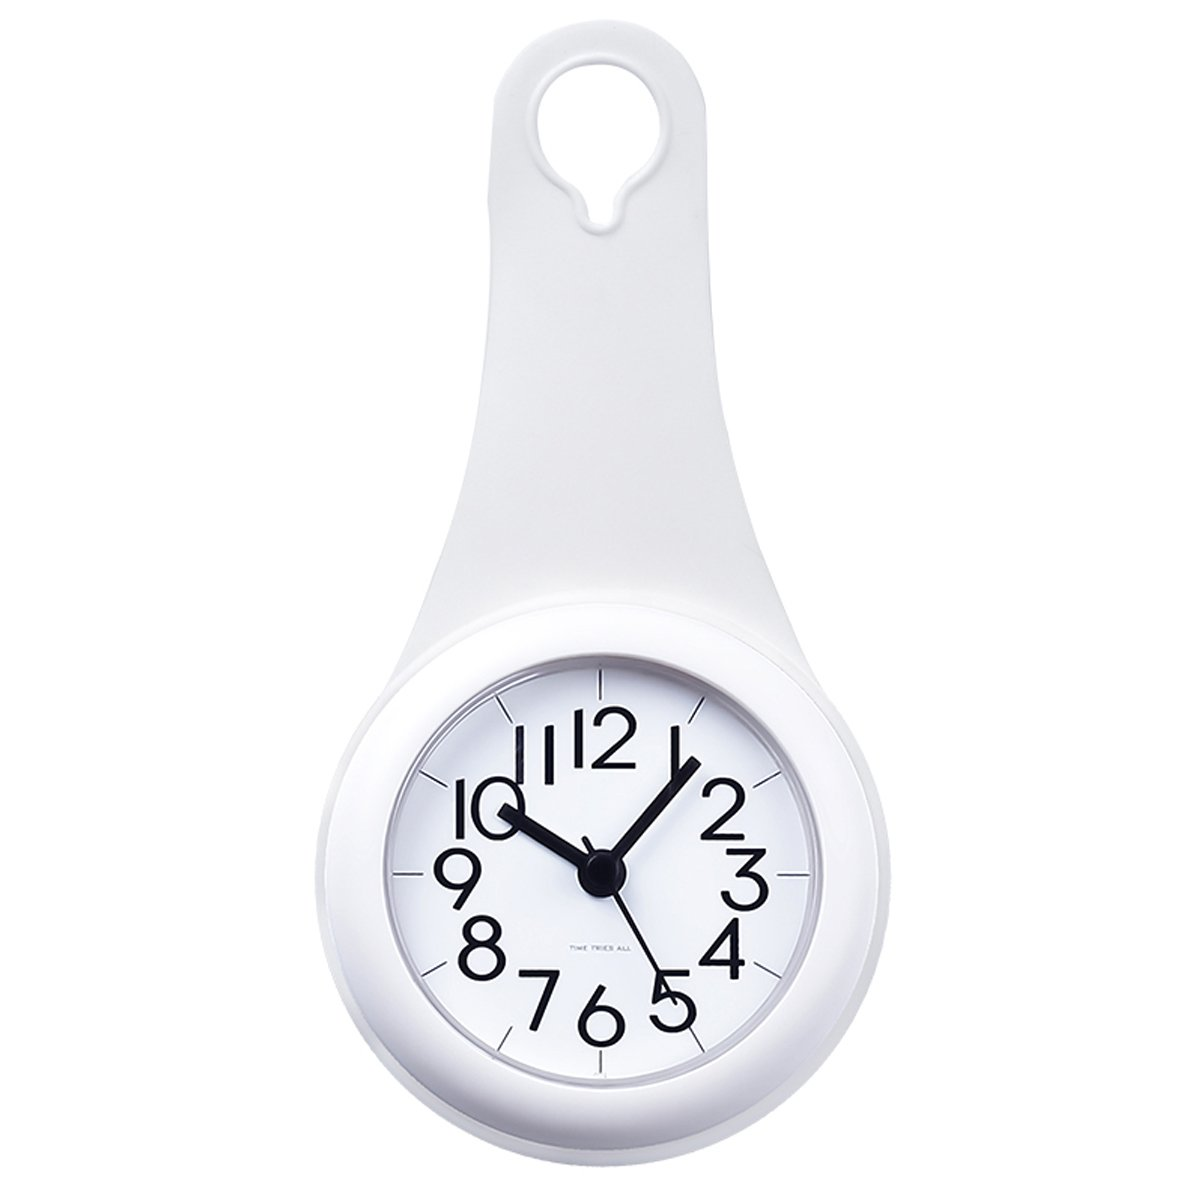 Bathroom Kitchen Hanging Clock With Sucker Hooks Waterproof Silent Movement Shower Clock